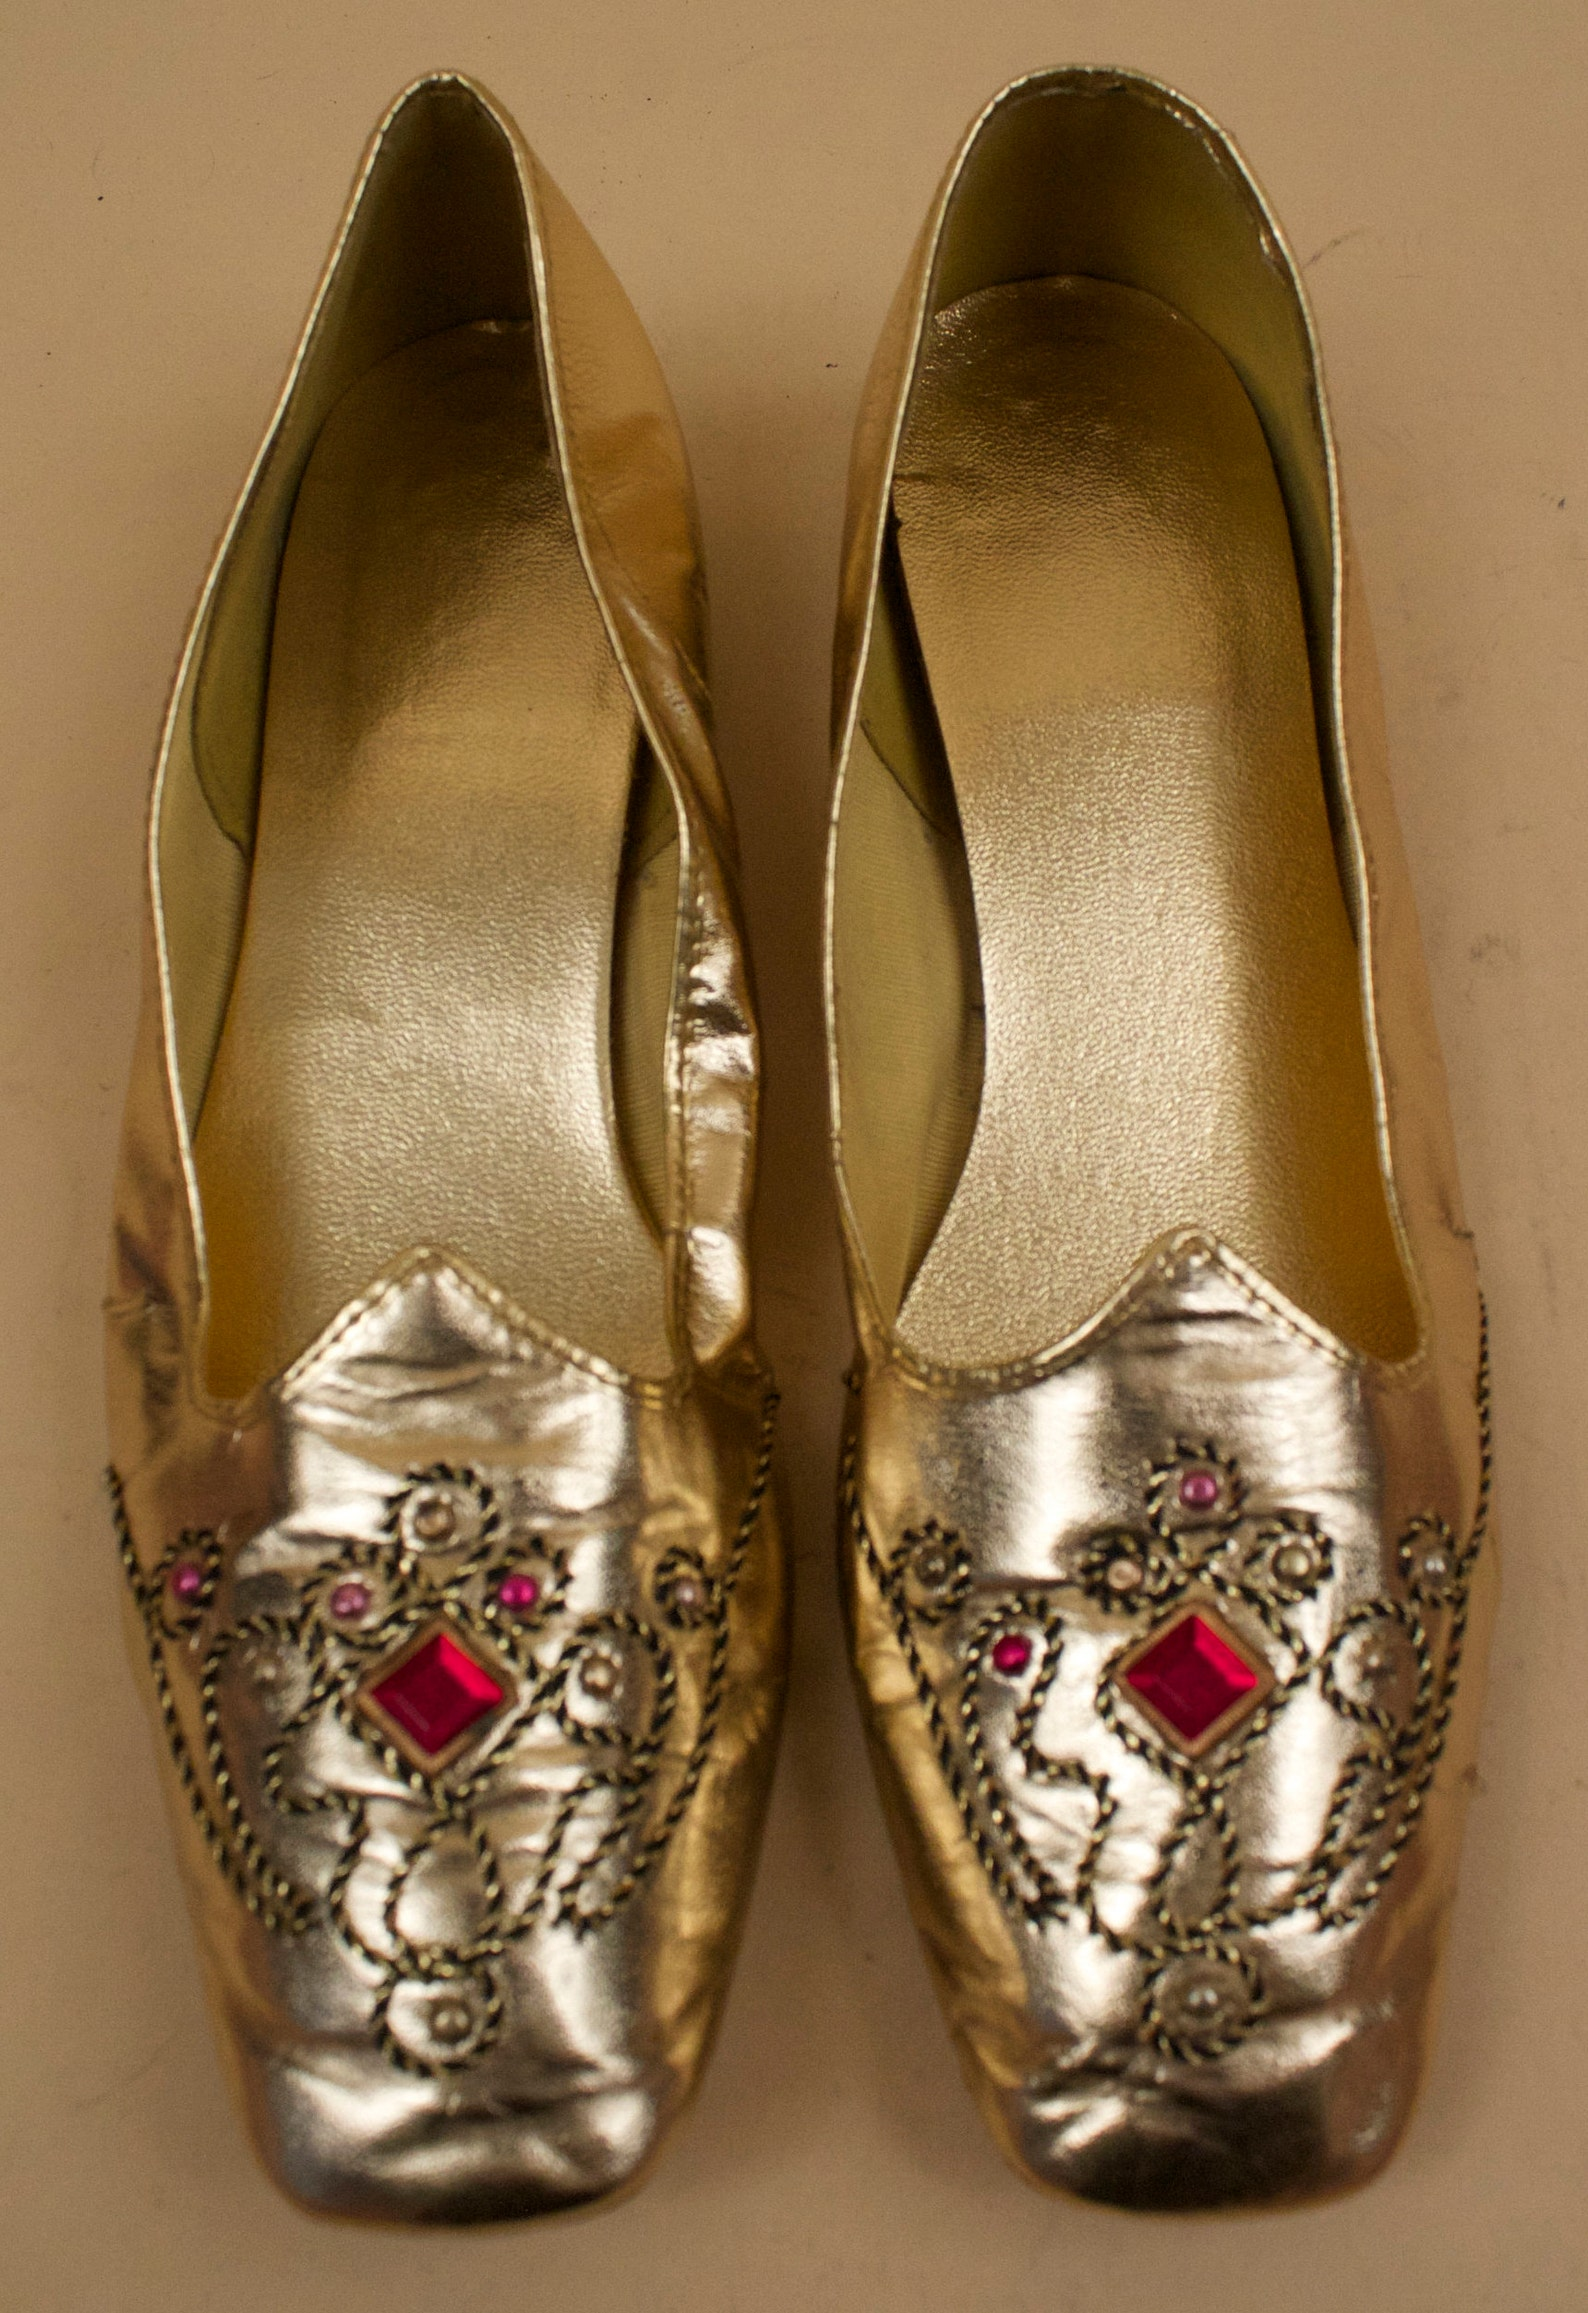 60s vtg gold metallic ruby gem studded slip on ballet flats / mod gogo east indian inspired hippie moccasin slipper 8 7.5 eu 38.